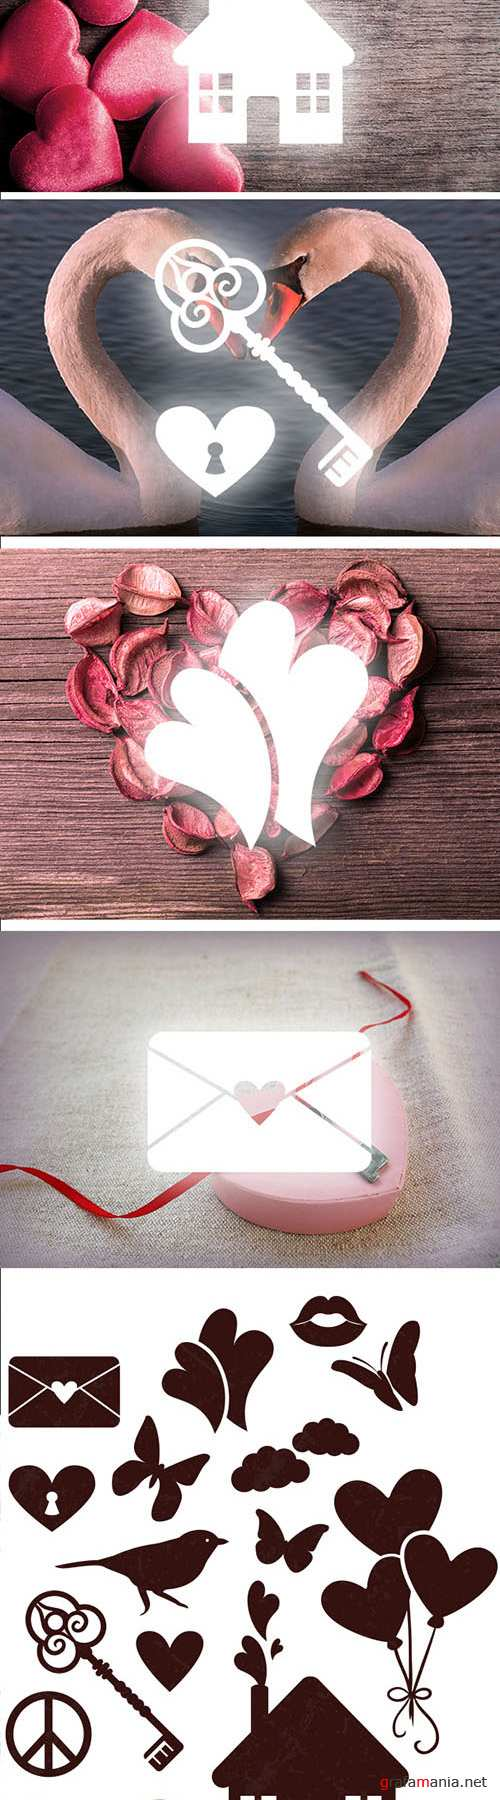 Designtnt - Love Vector Elements Set 1